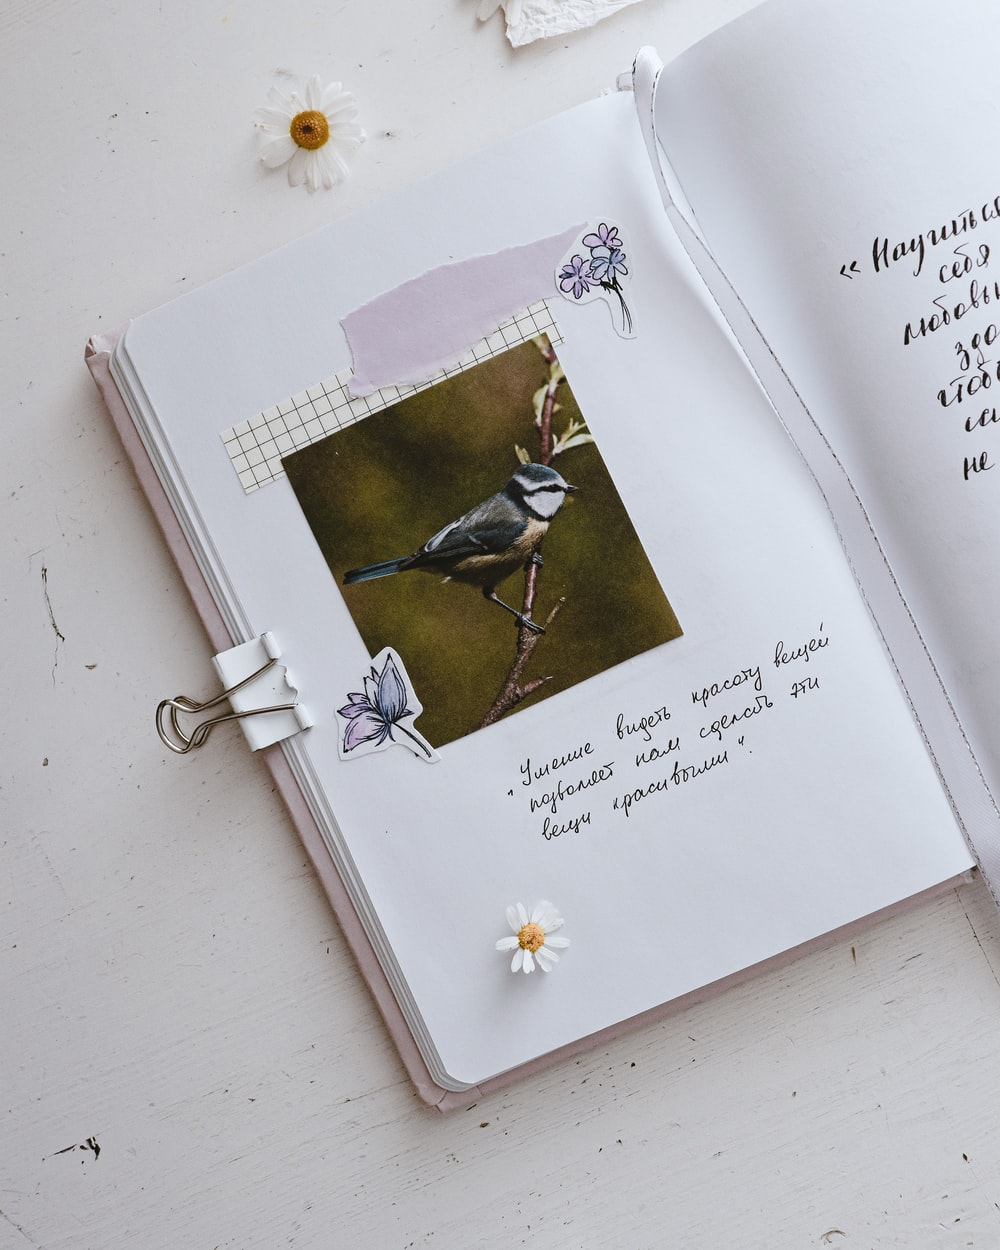 happy birthday greeting card on white surface